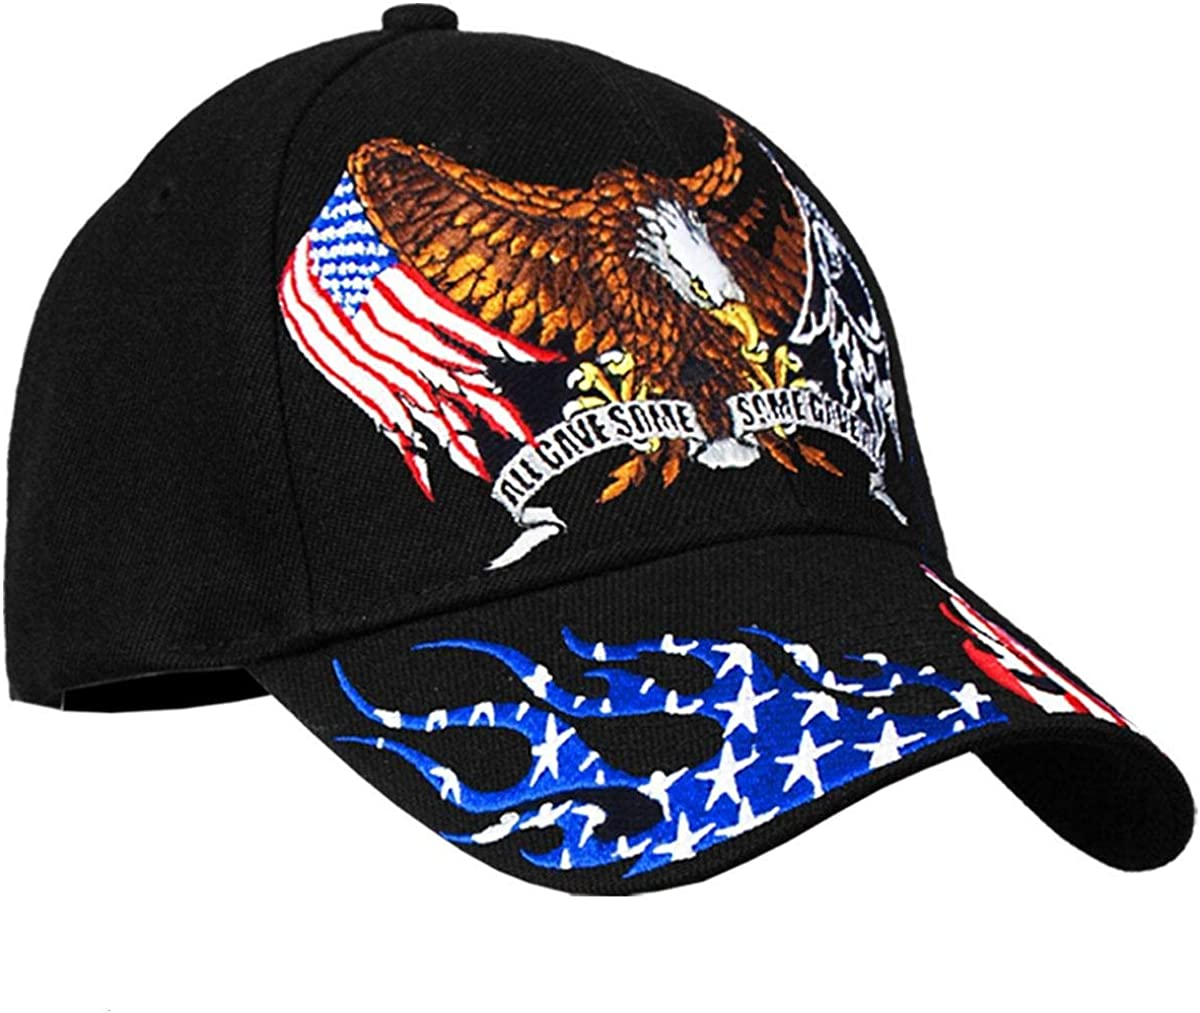 POW MIA Super-cheap Some Gave Patriotic Black All free shipping Hat